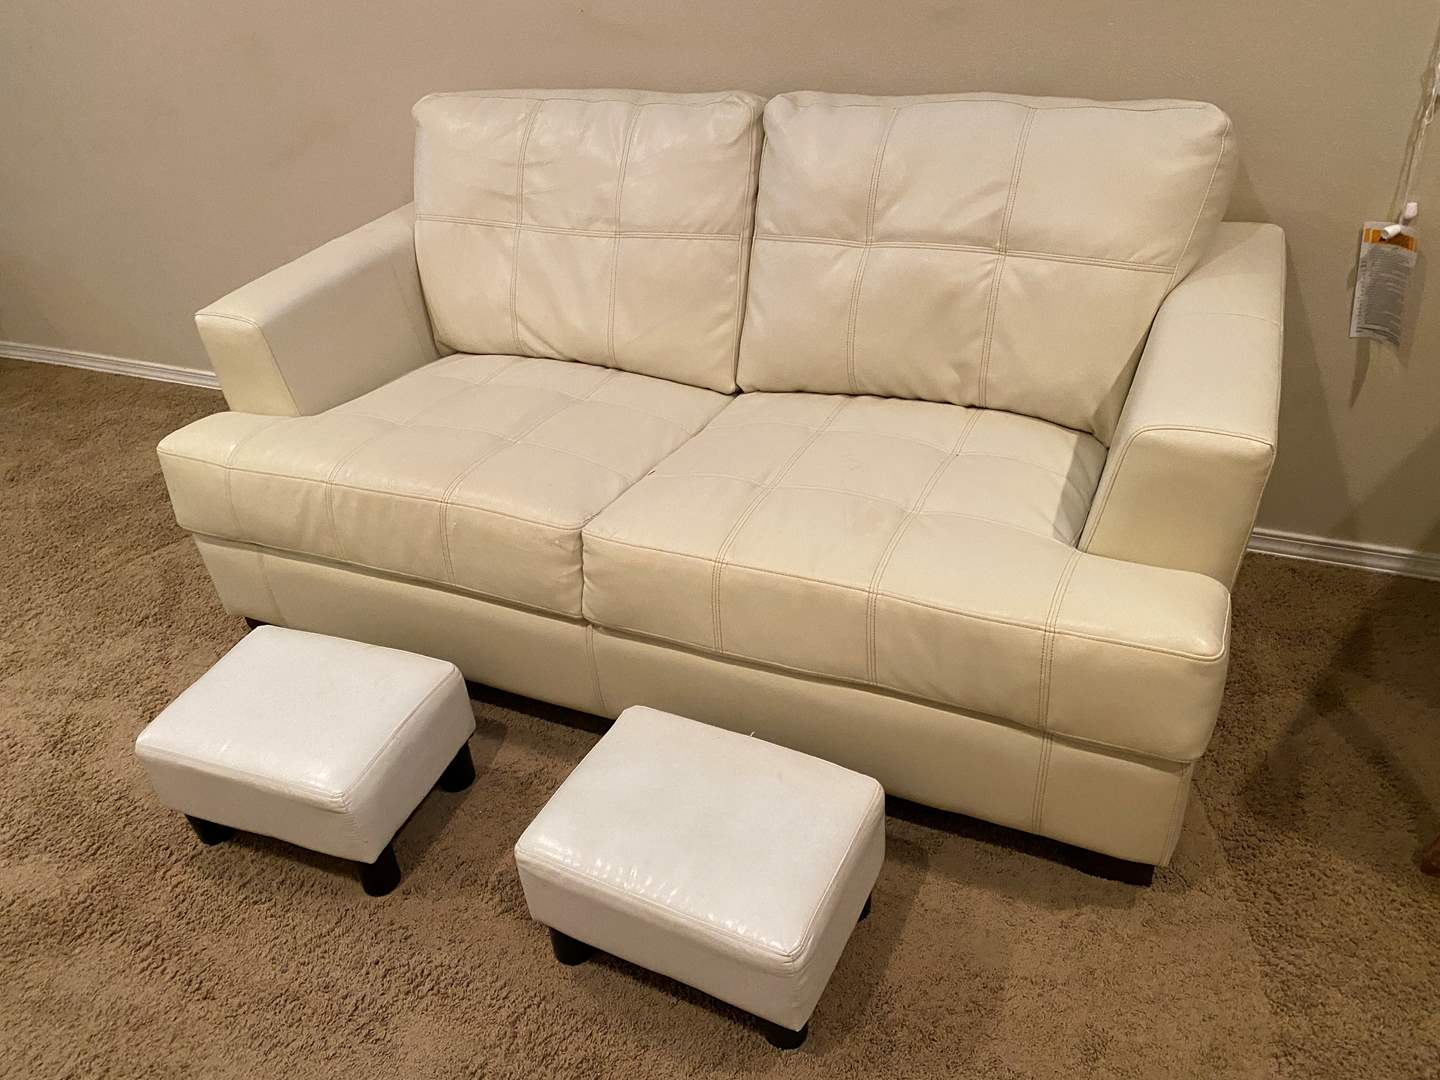 Lot # 122 - White Leather Love Seat Sofa w/ Two Foot Stools (main image)